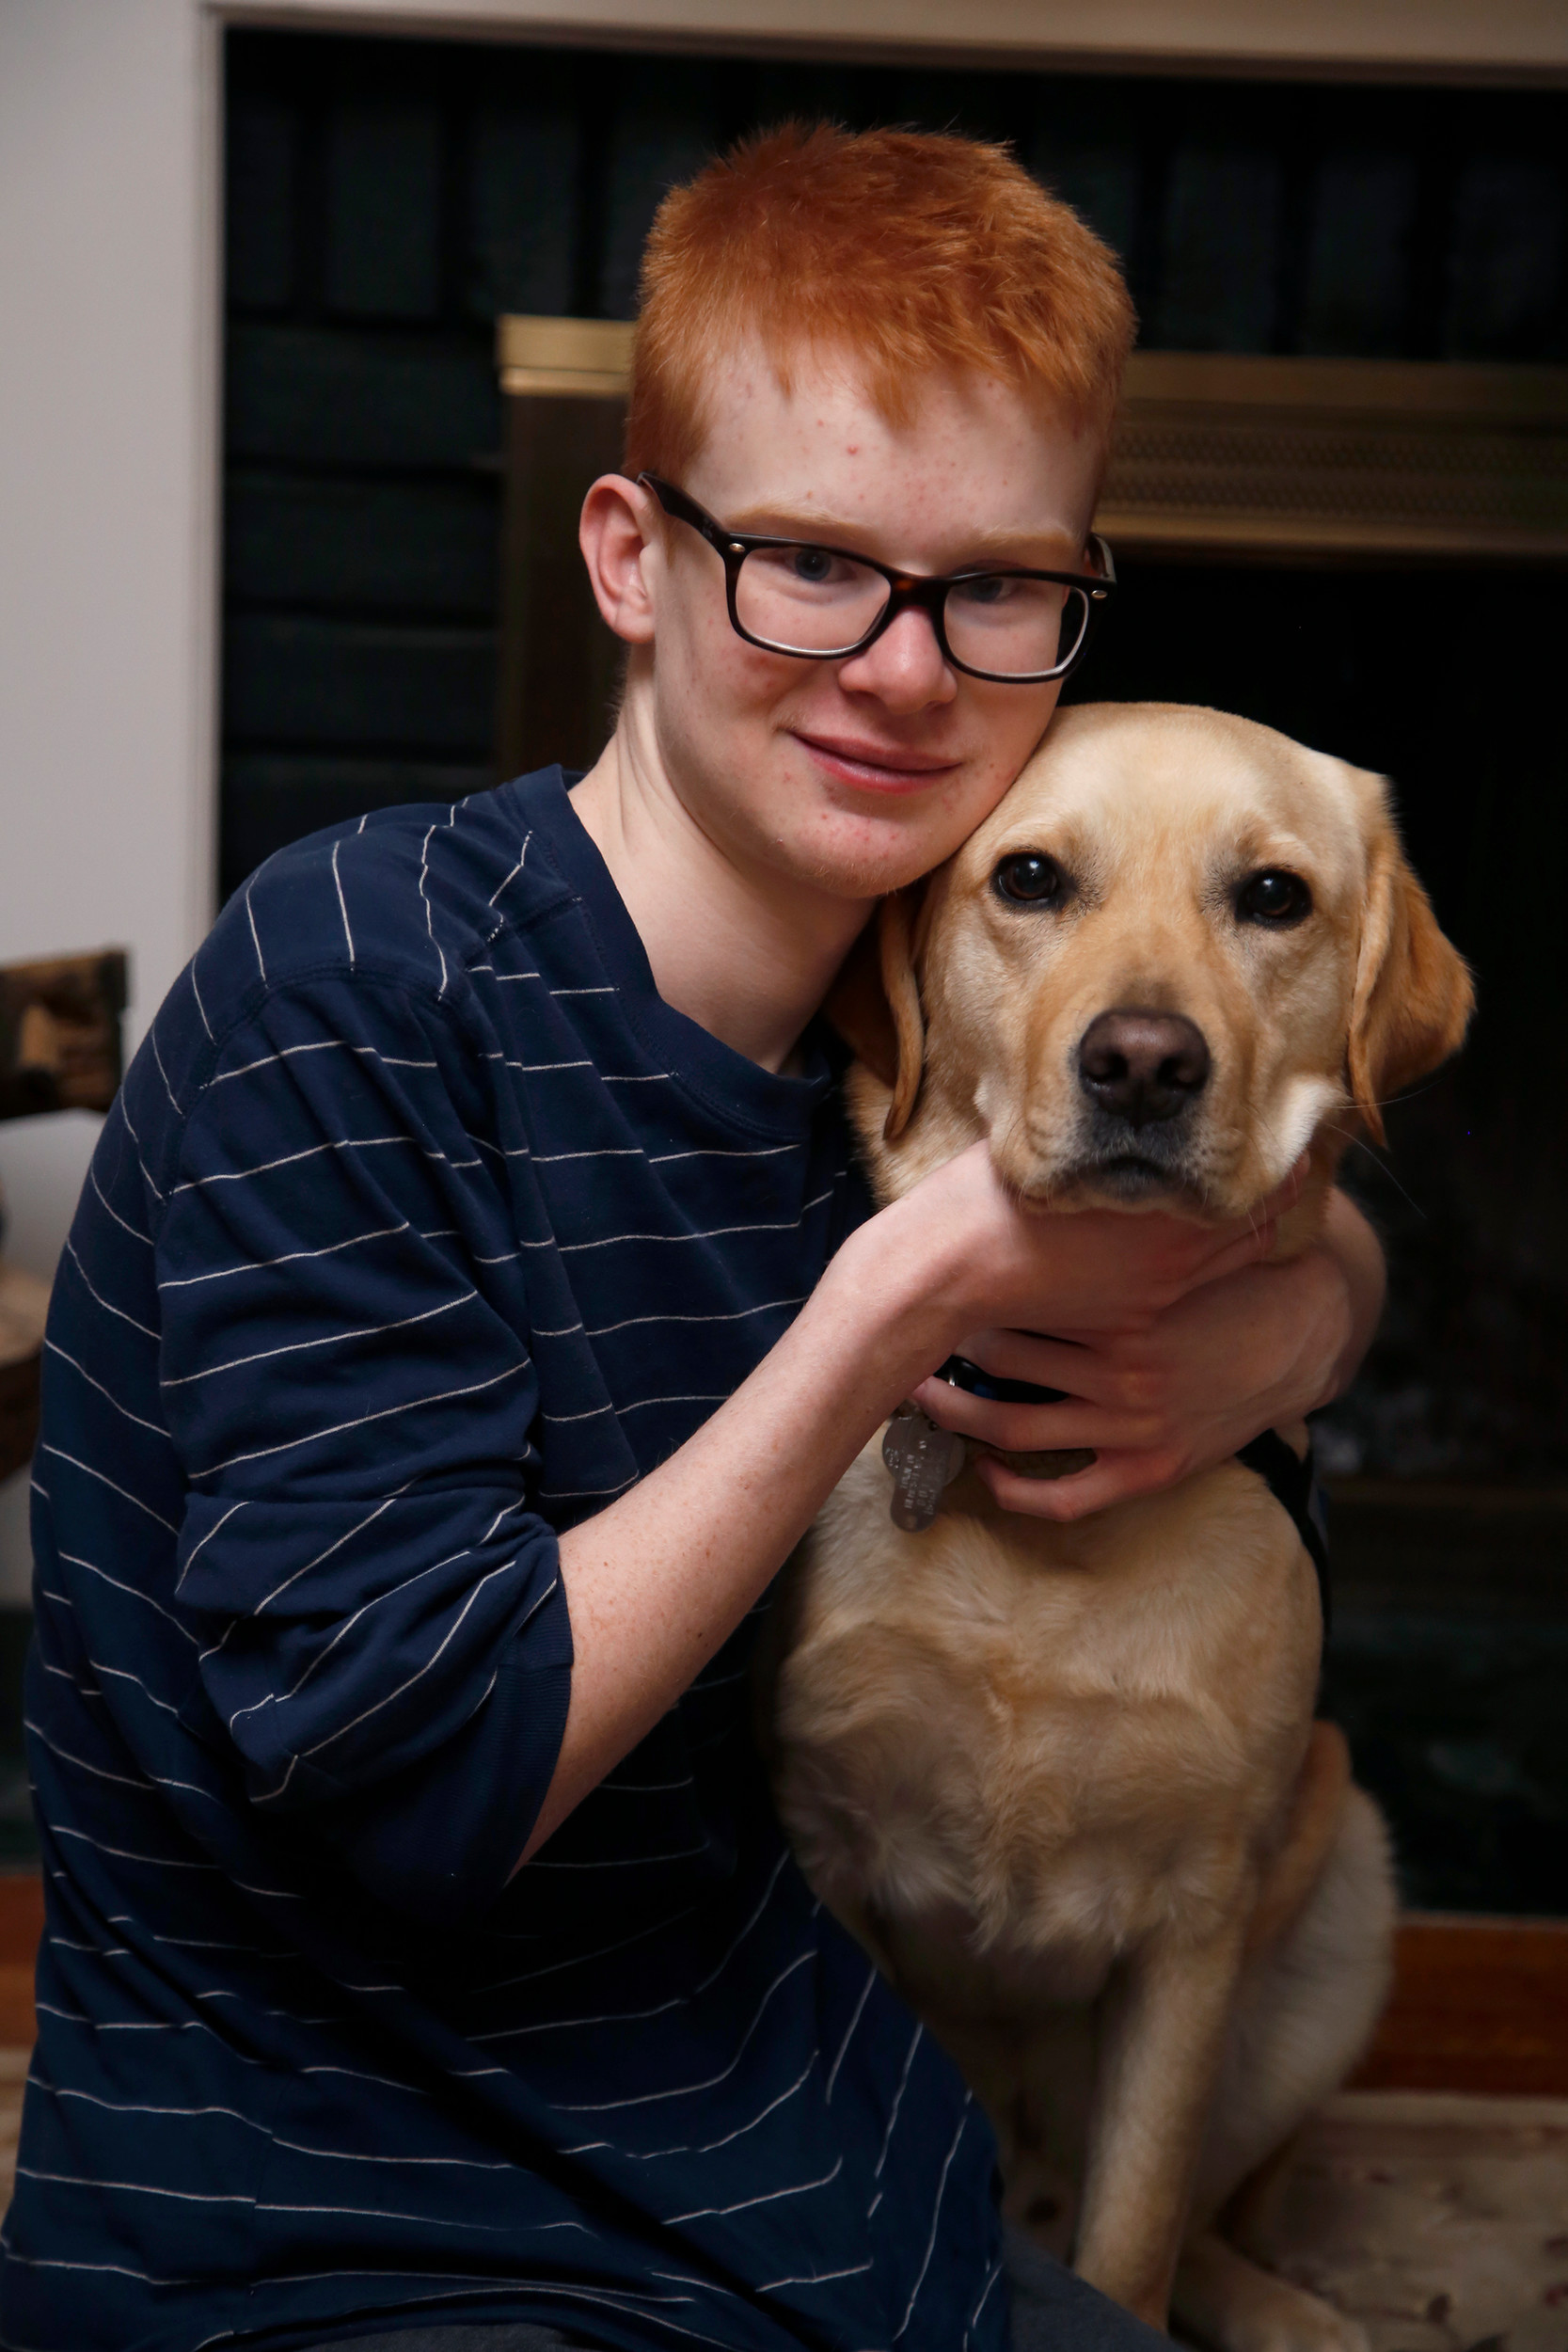 Terence, 14, of Malverne, with Nubert, a highly trained assistance dog that was provided gratis by the non-profit Canine Companions for Independence.